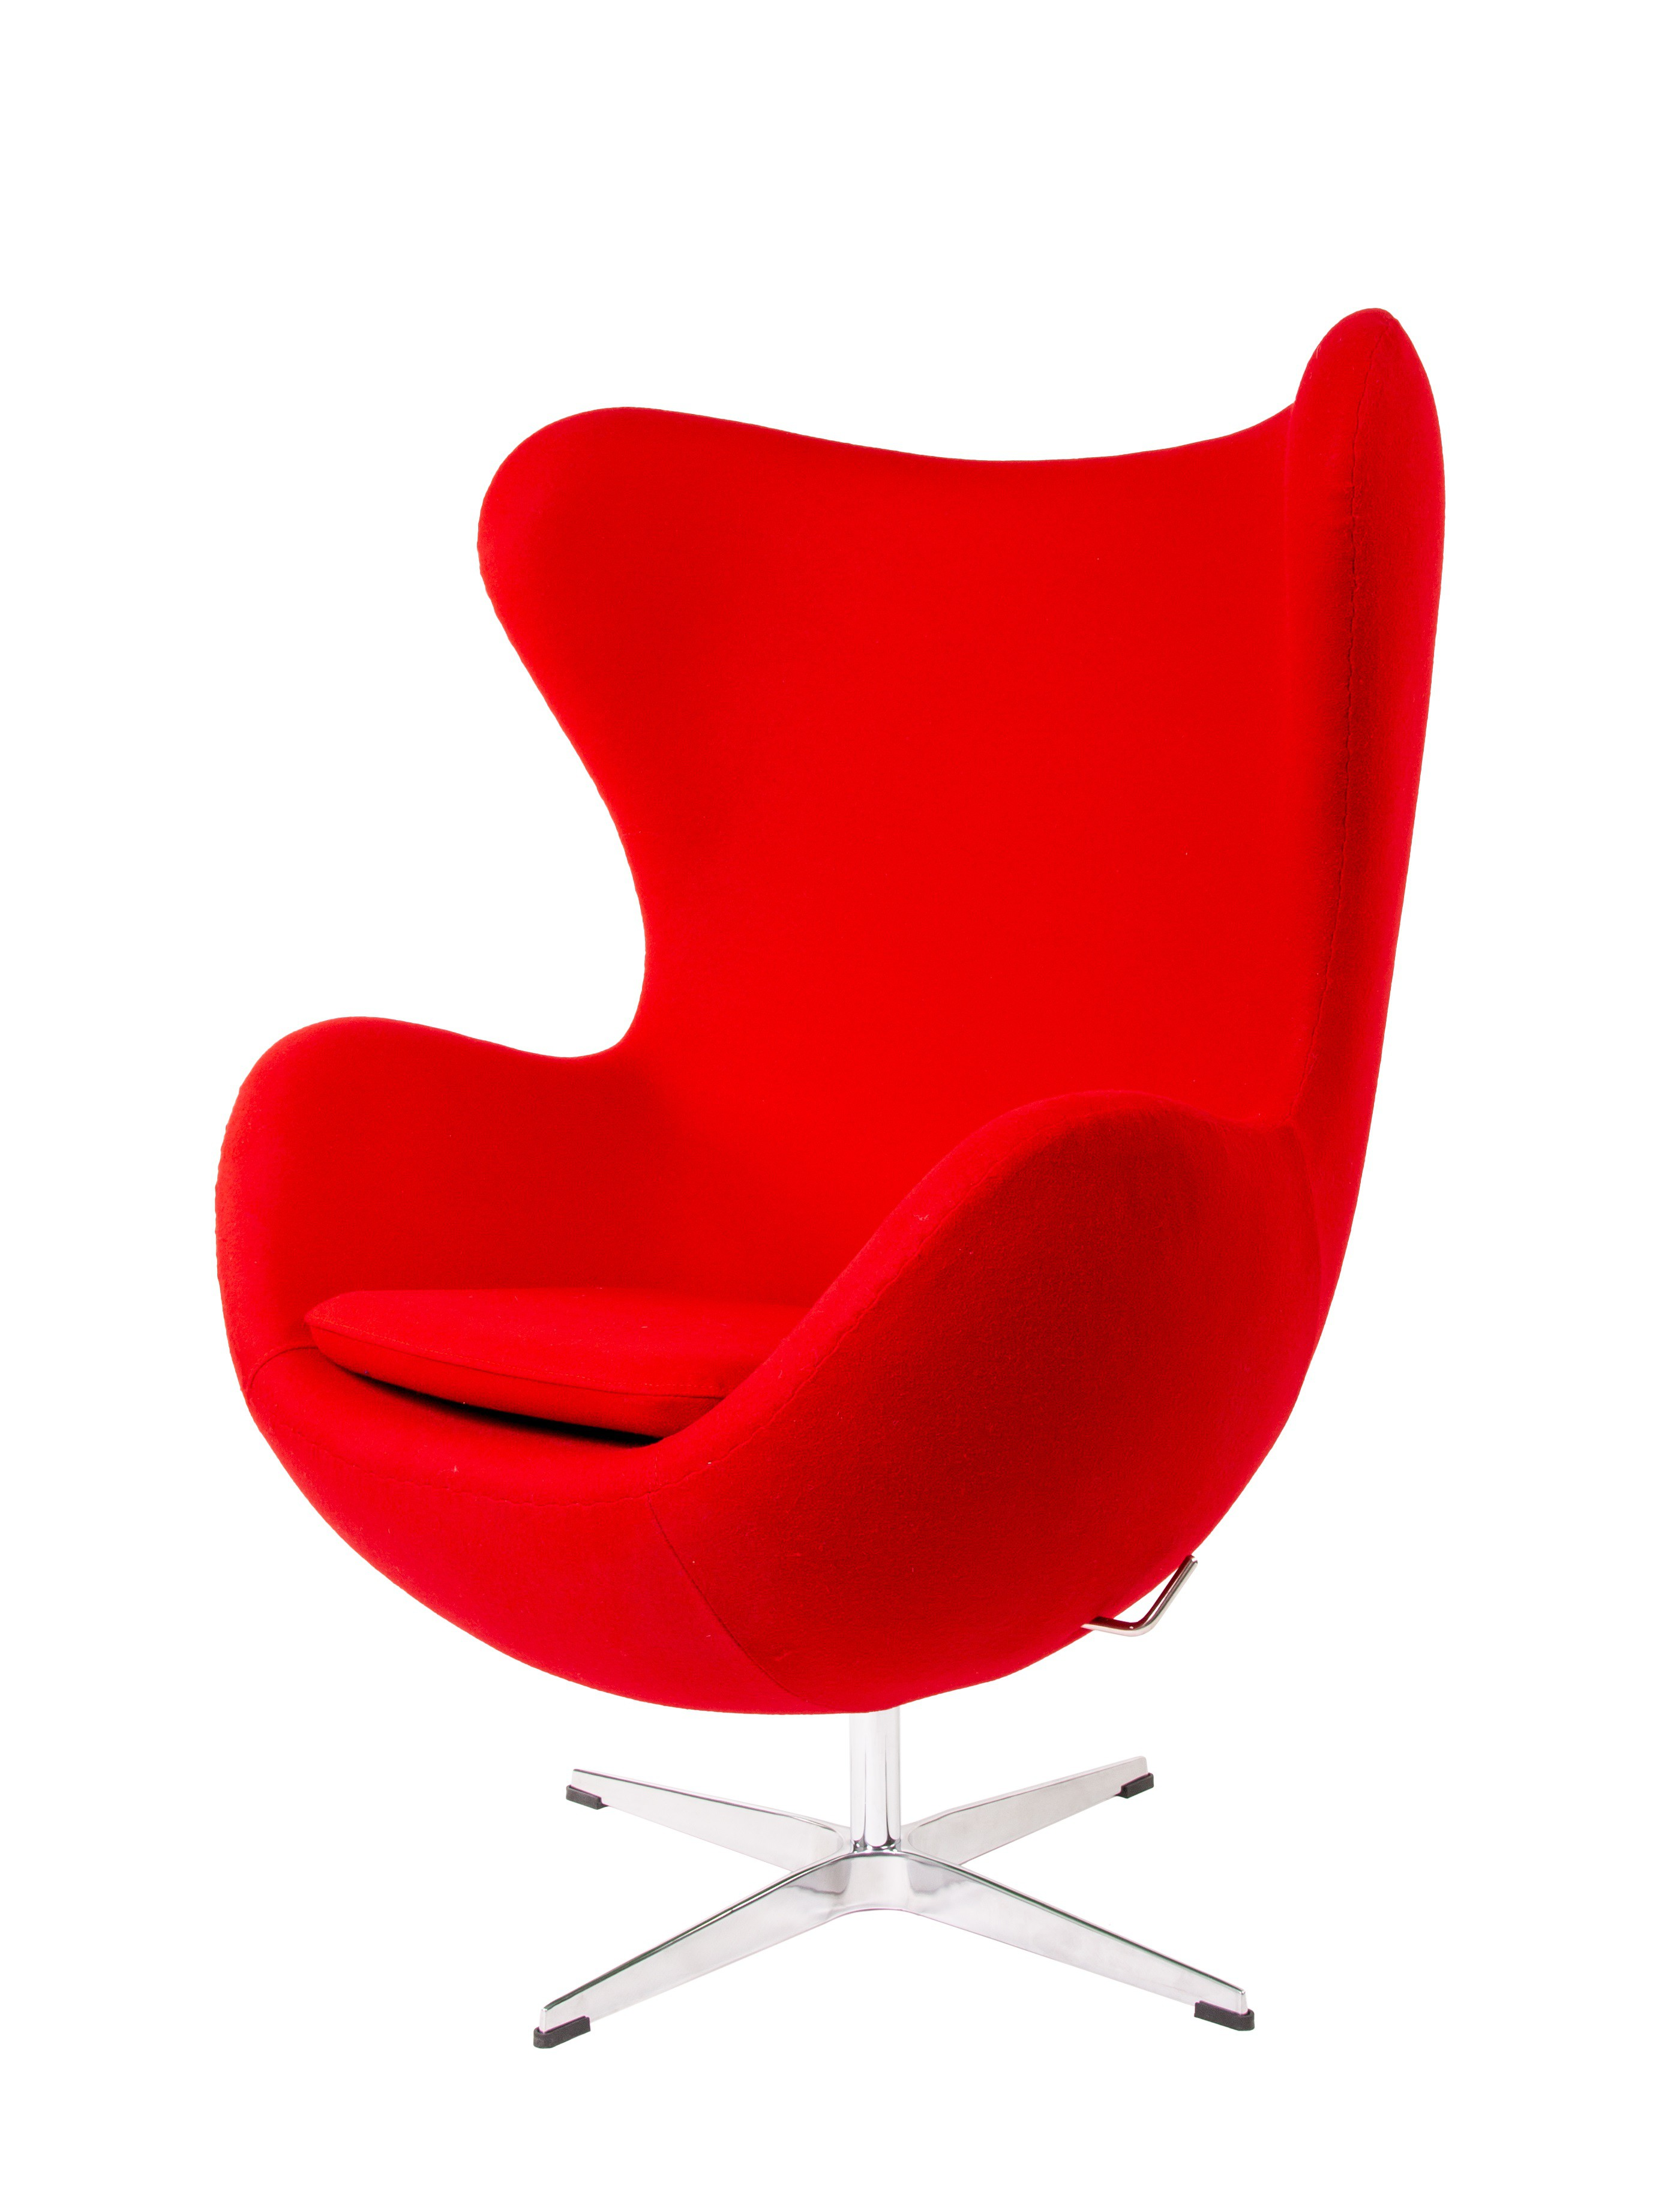 Jacobsen Lounge Chair Egg Chair Design Lounge Chair